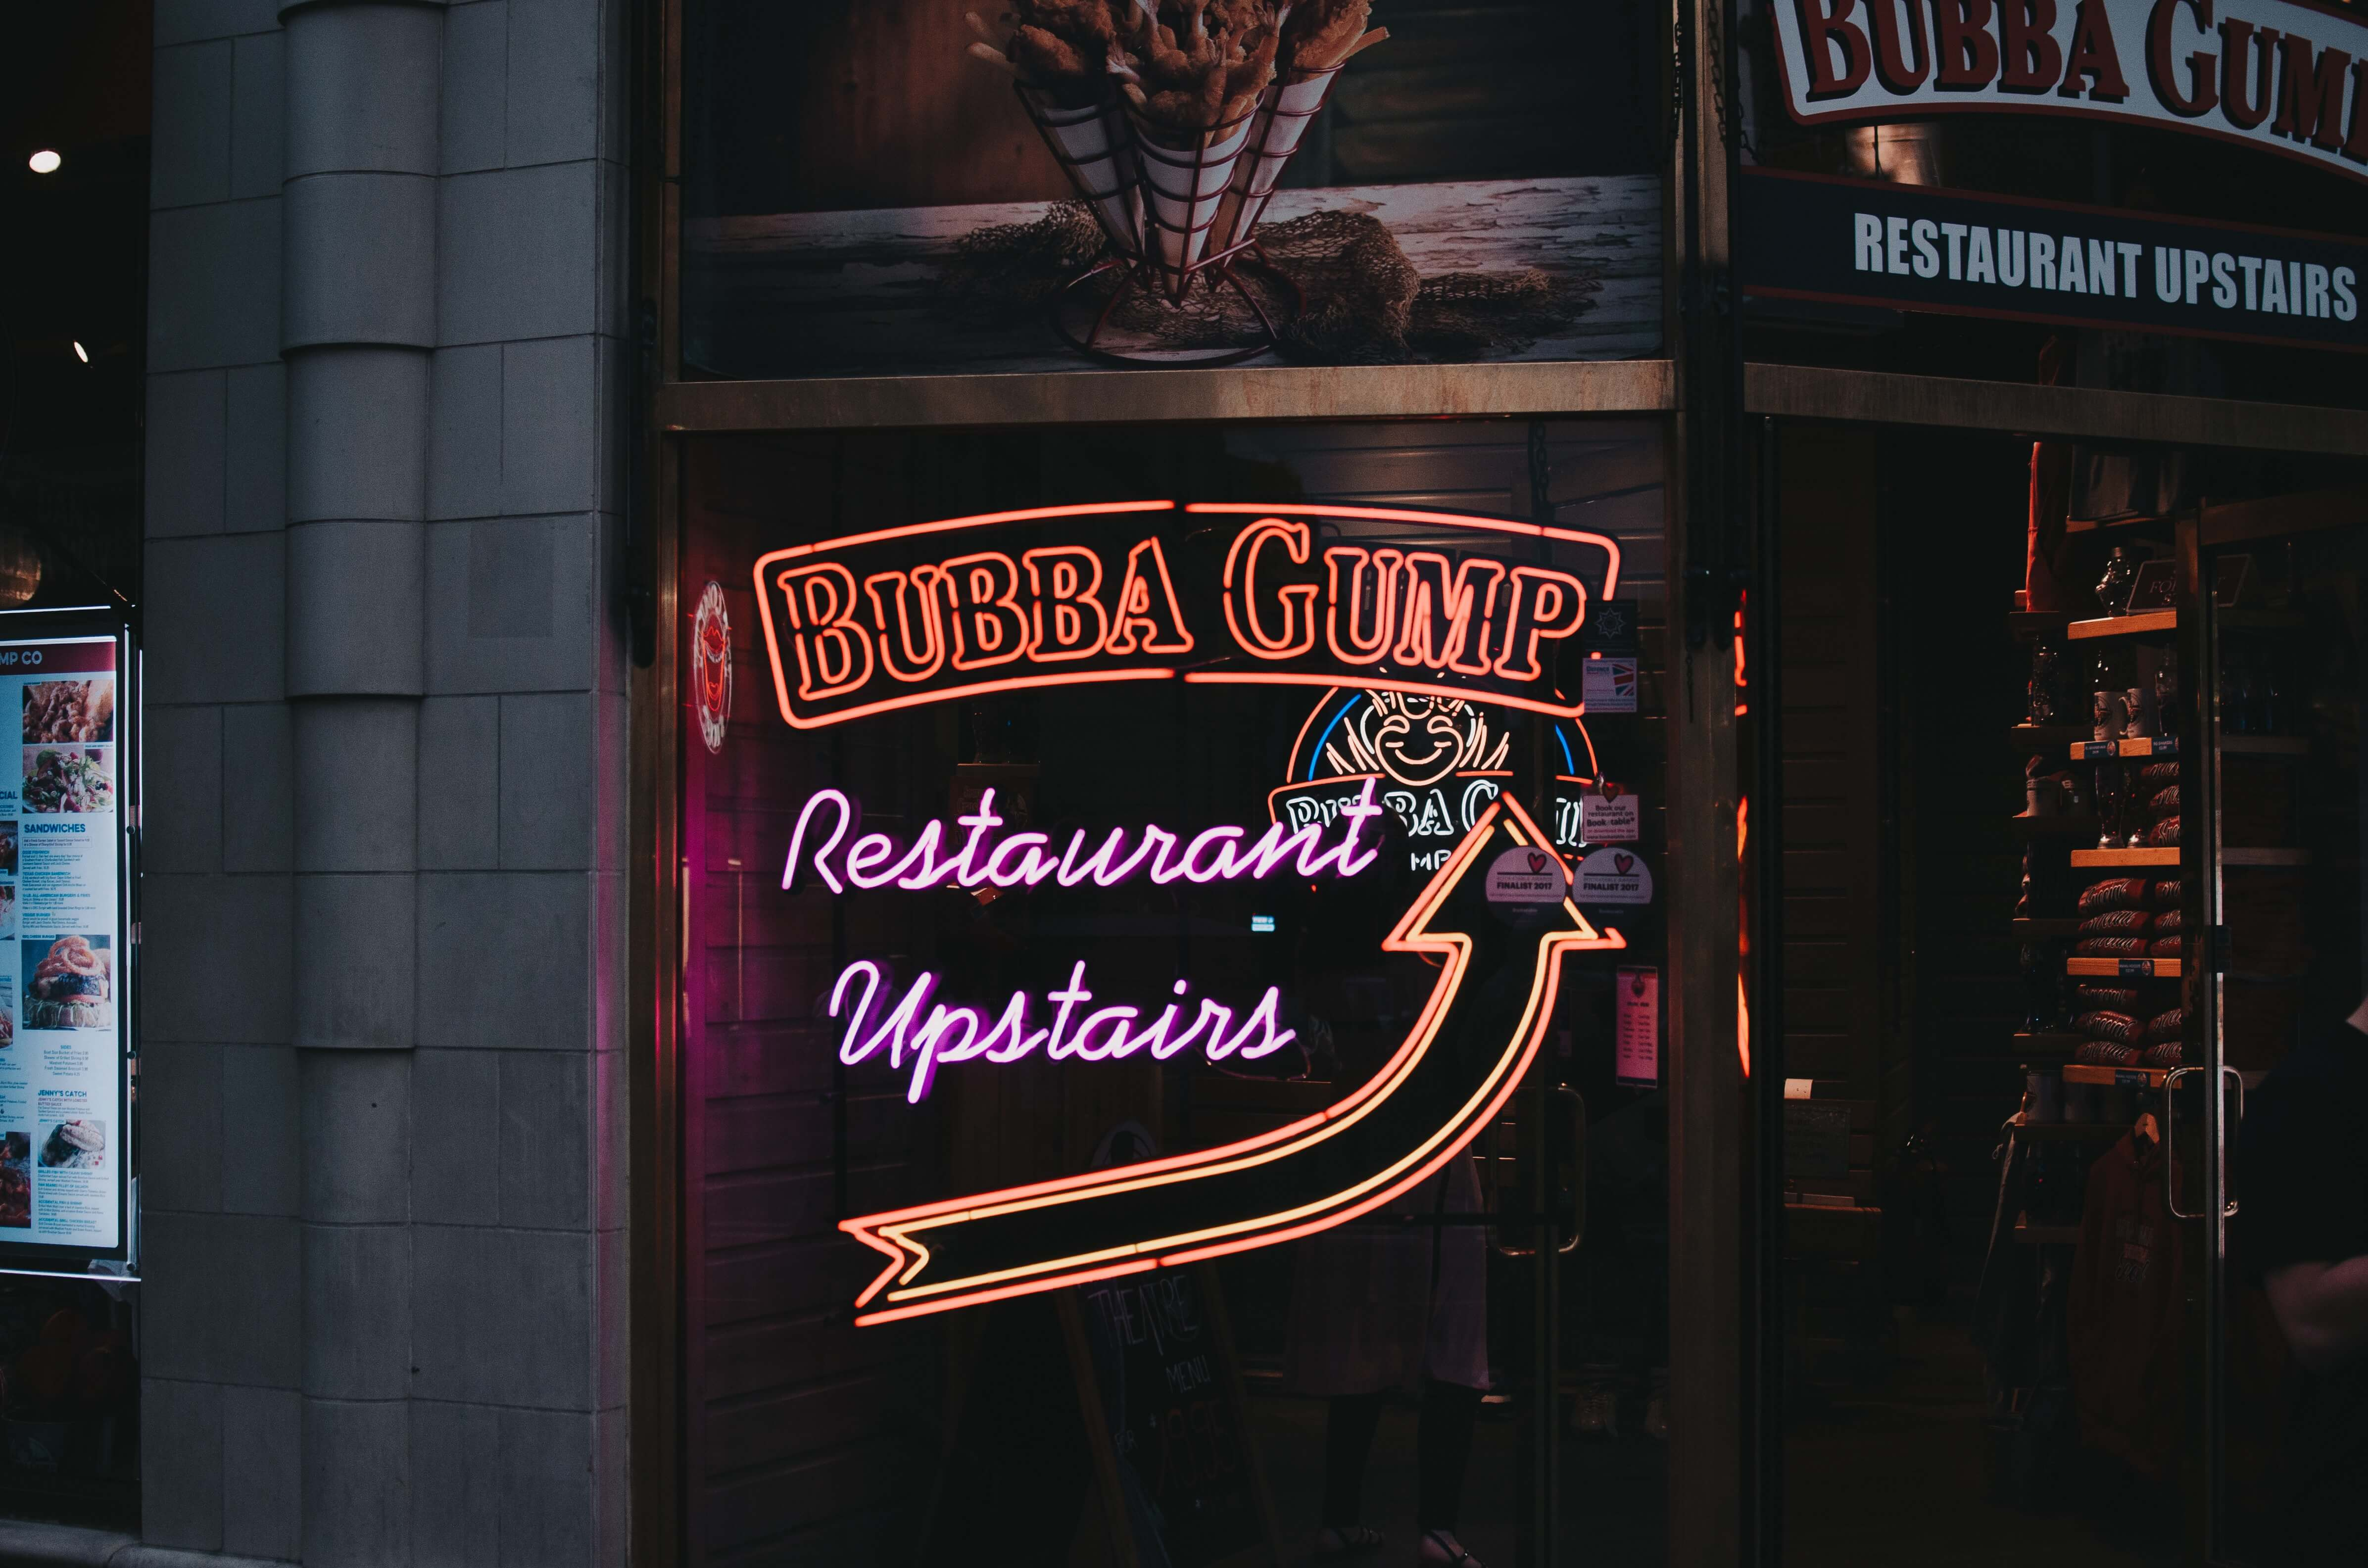 Increase customer footfall with store front|Burger Menu to increase customer footfall